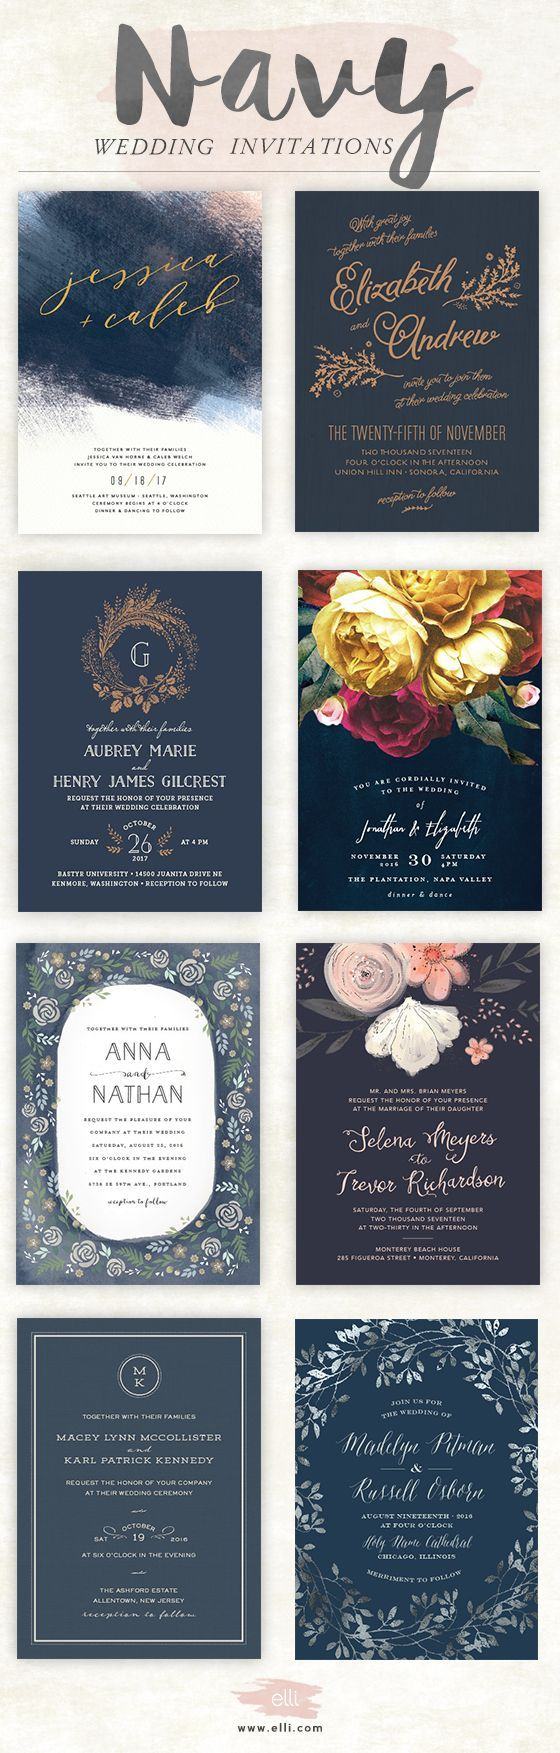 Now trending - navy wedding invitations from Elli.com